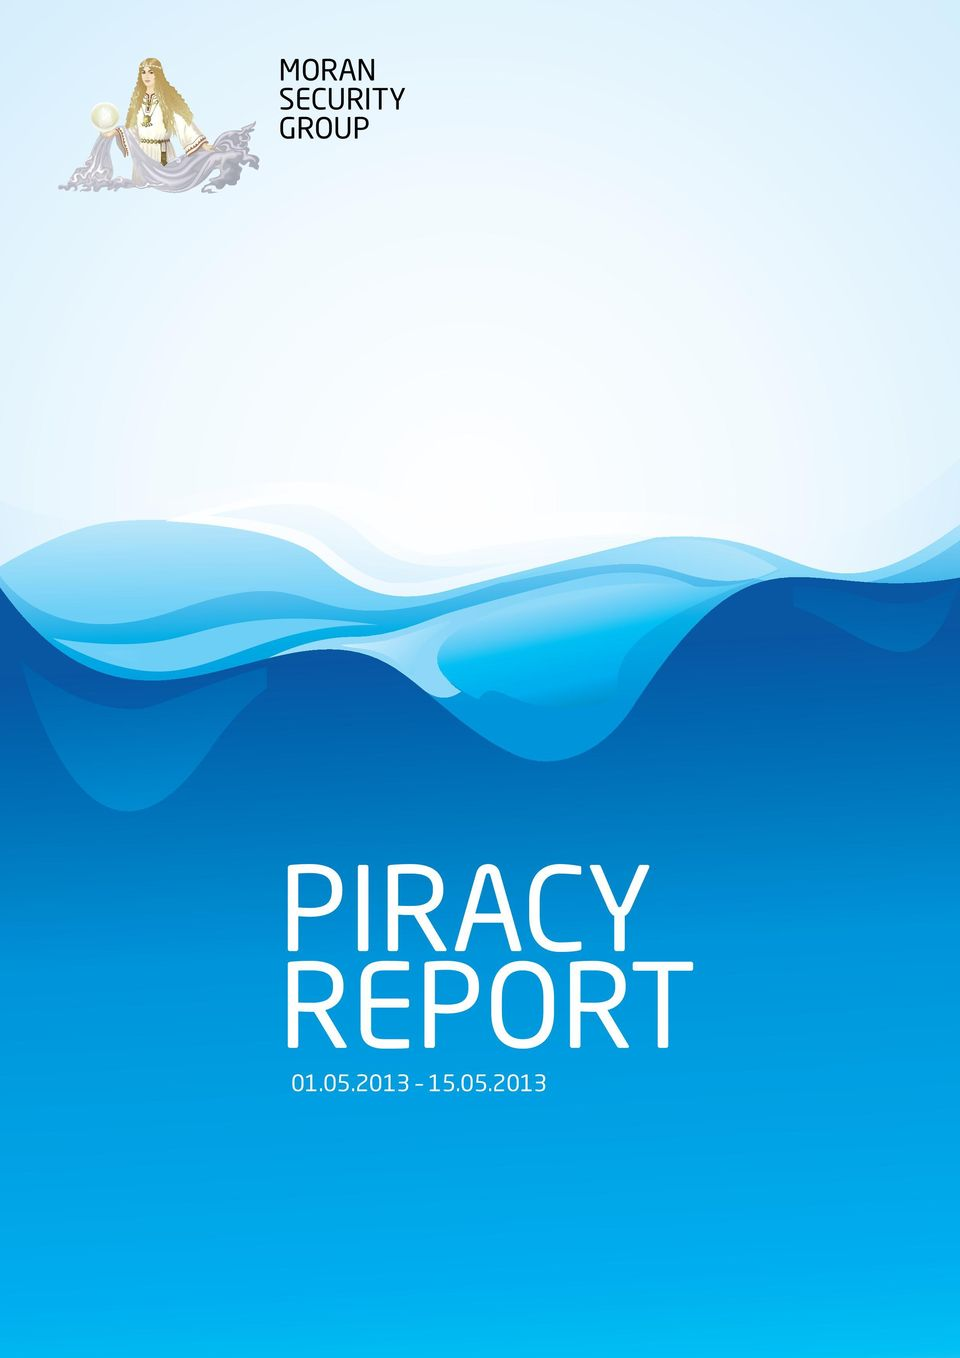 GROUP PIRACY